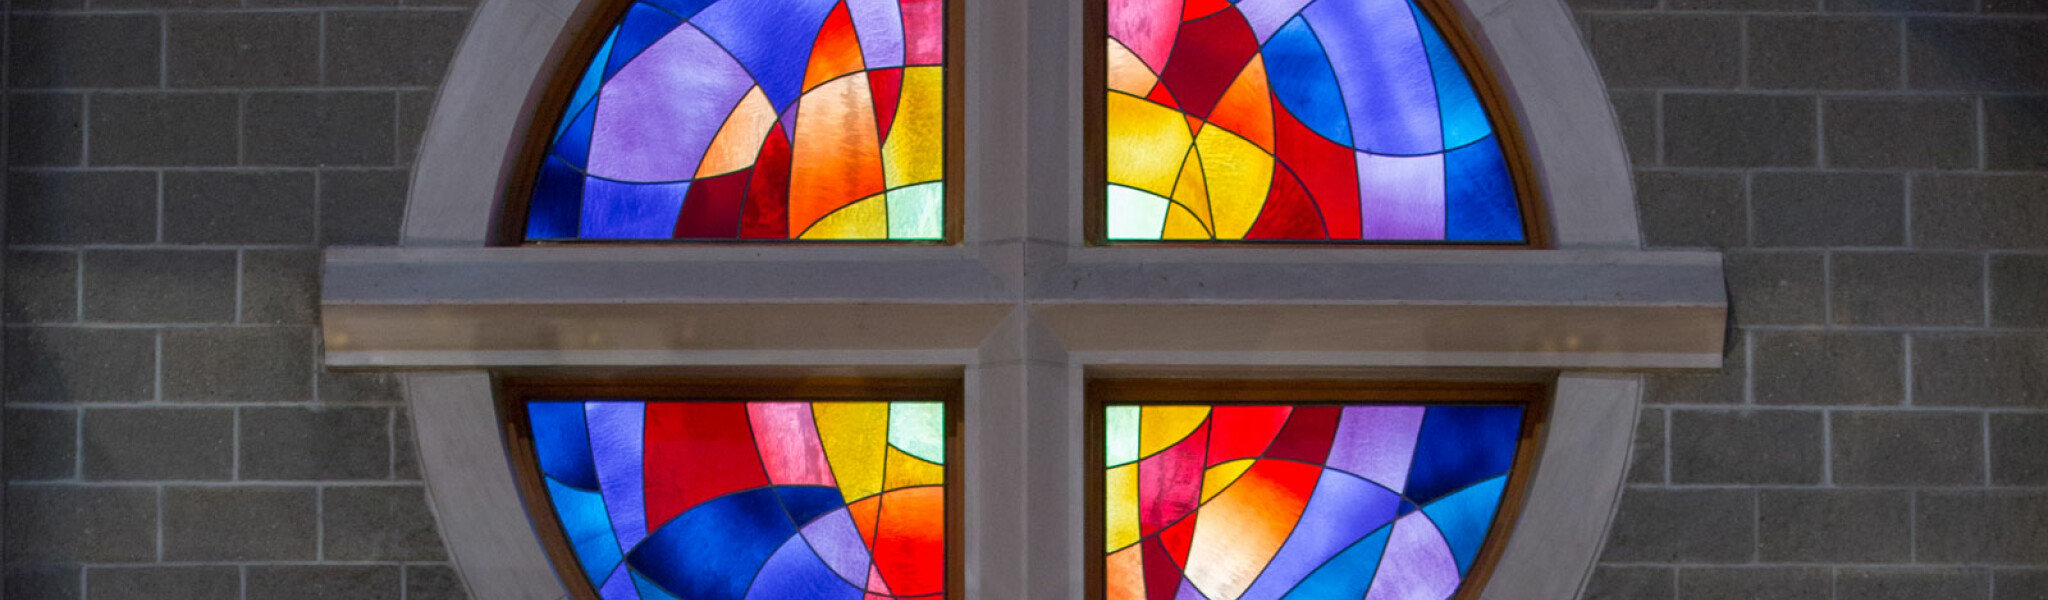 Cornerstone Lutheran Church | Cornerstone Lutheran Church